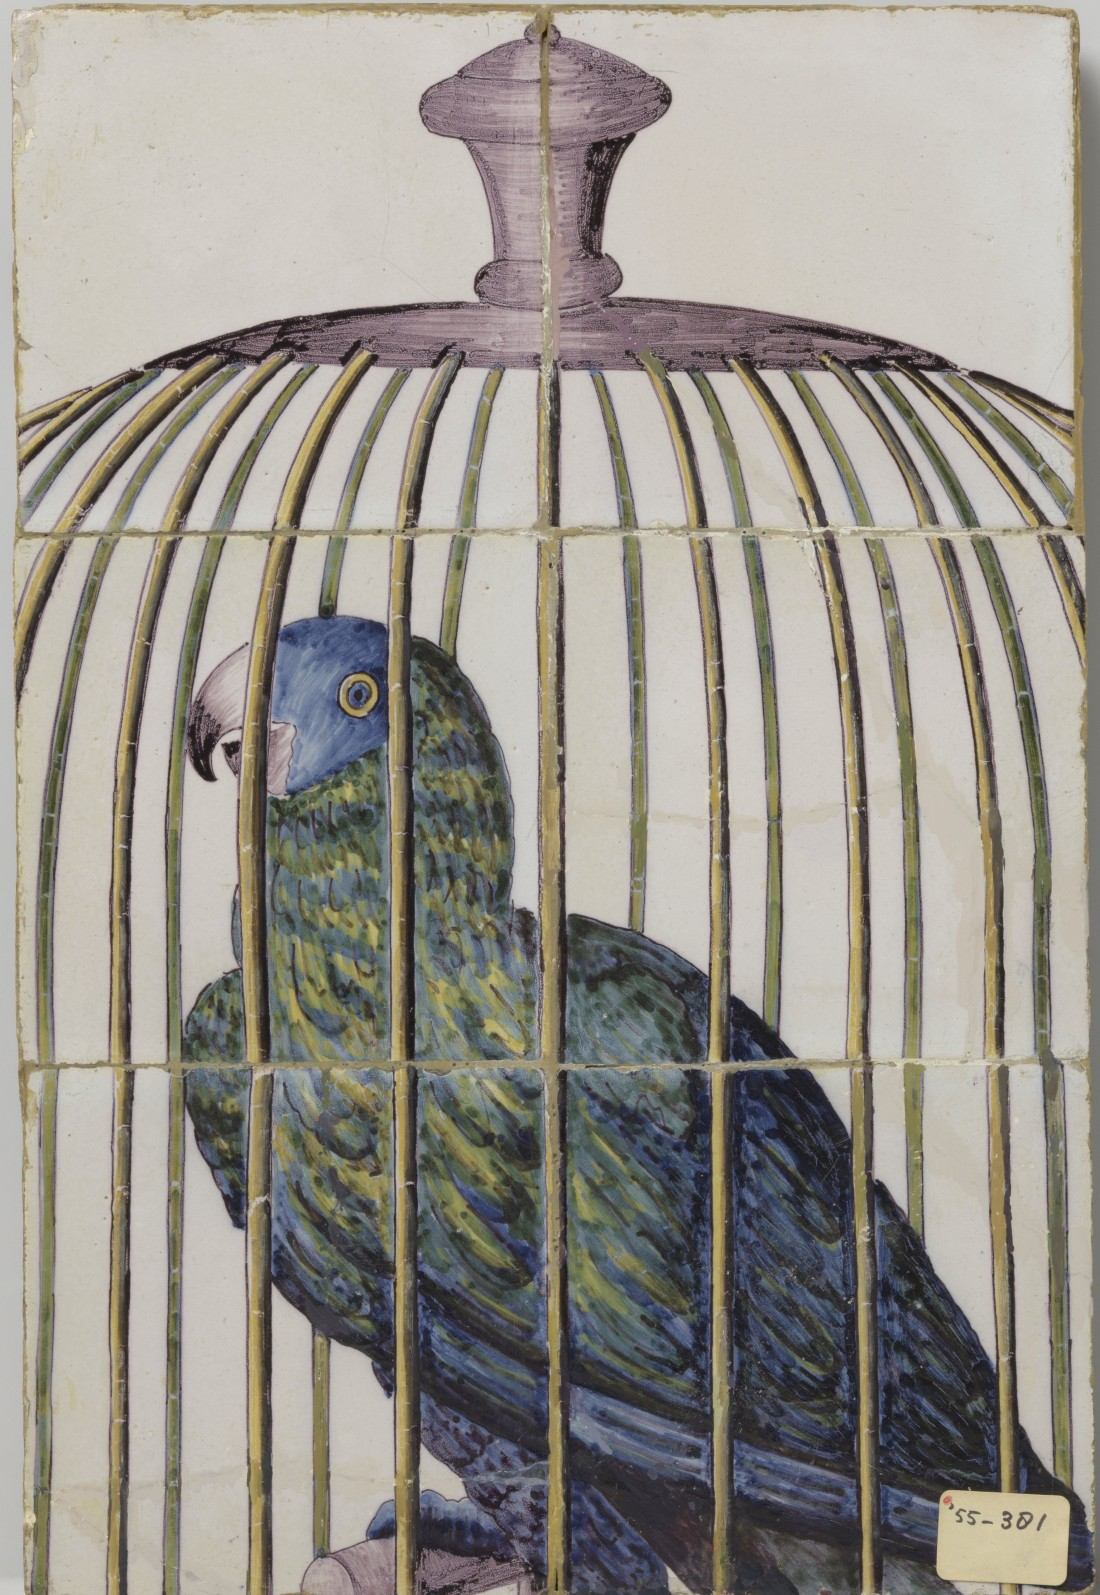 Tile tableau with six tiles showing a multicolored parrot in a cage.